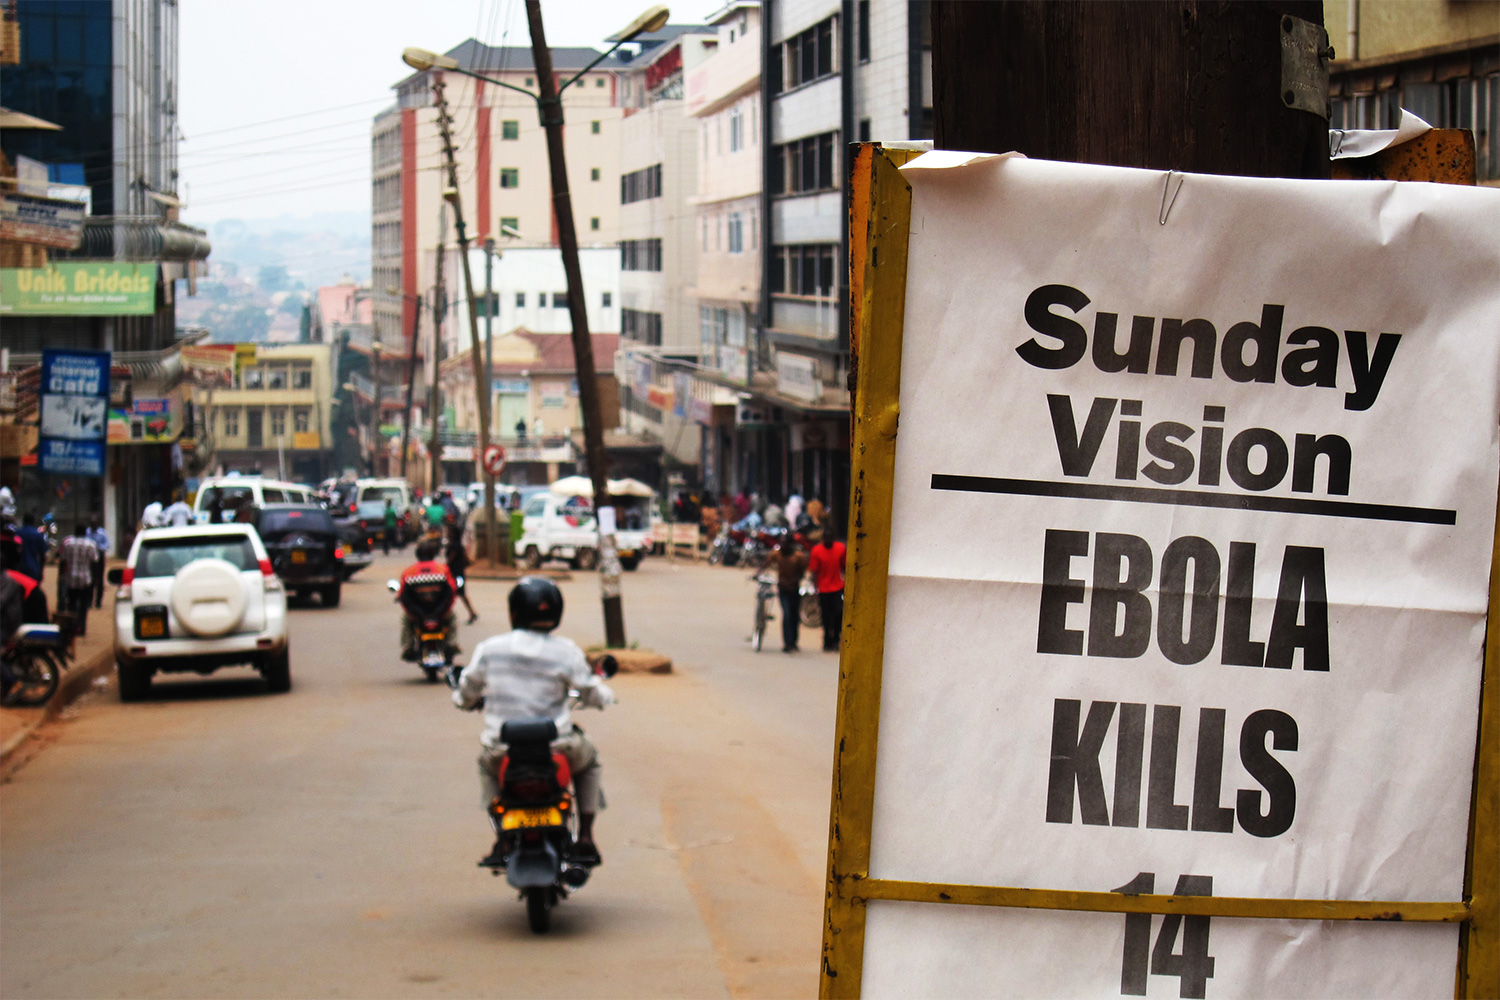 The photo shows a busy urban street with a sign announcing the Sunday paper's headline, Sunday Vision, EBOLA KILLS 14, Sunday July 29, 2012.